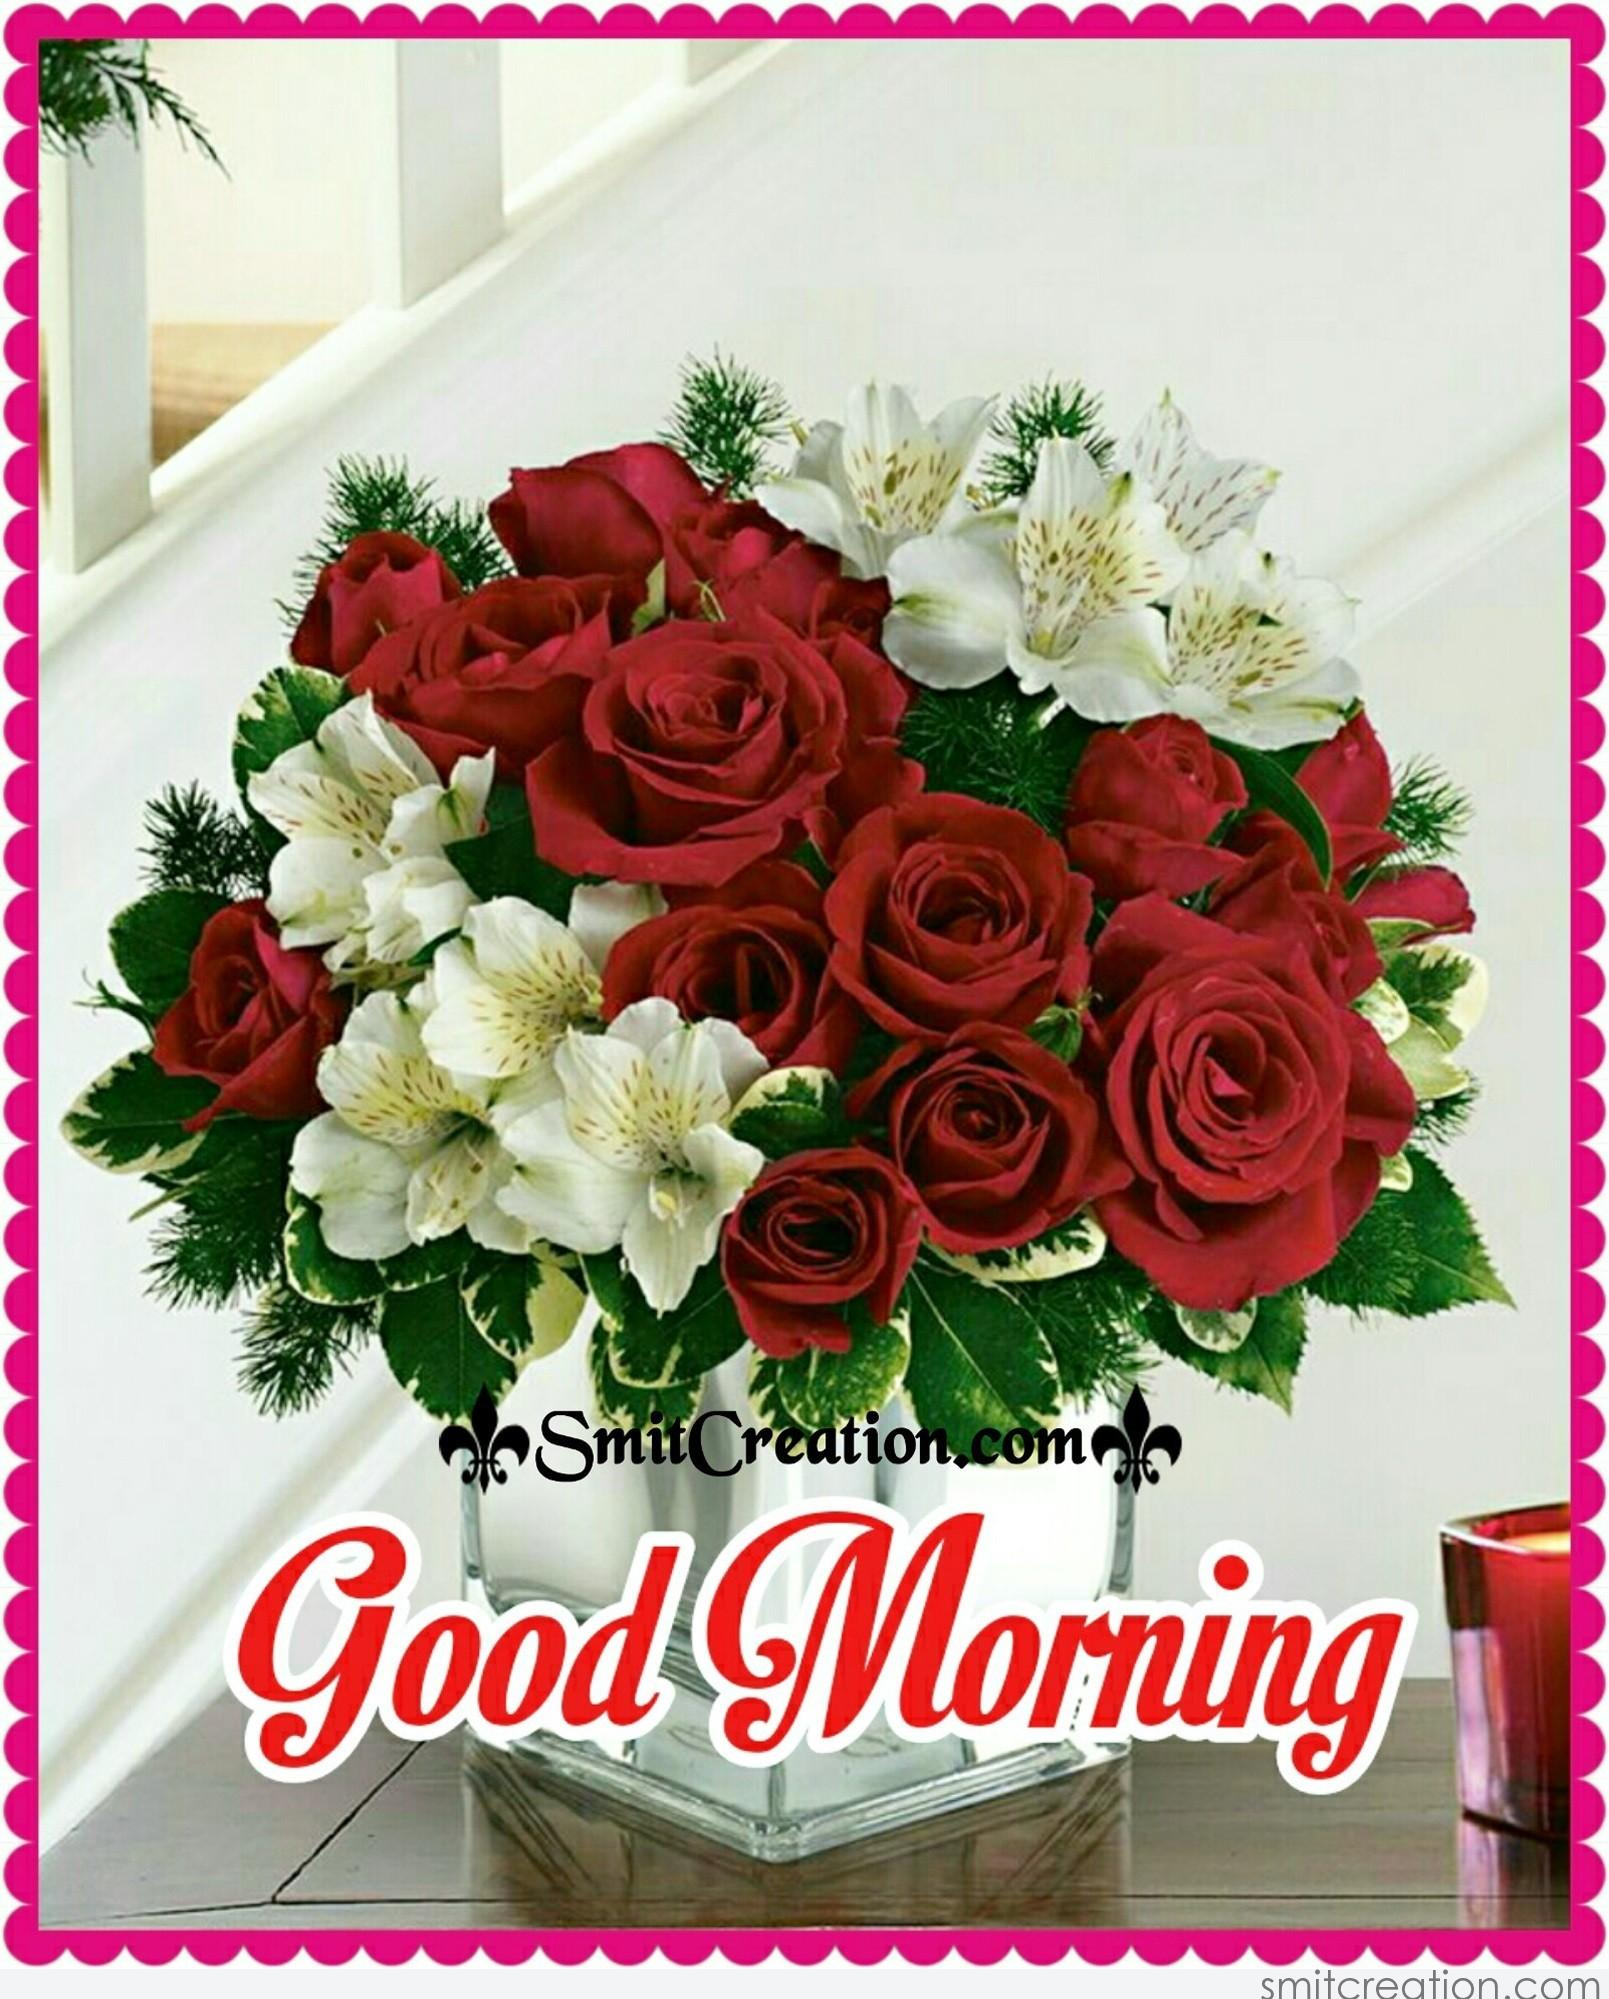 Good Morning Bouquet Pictures and Graphics - SmitCreation